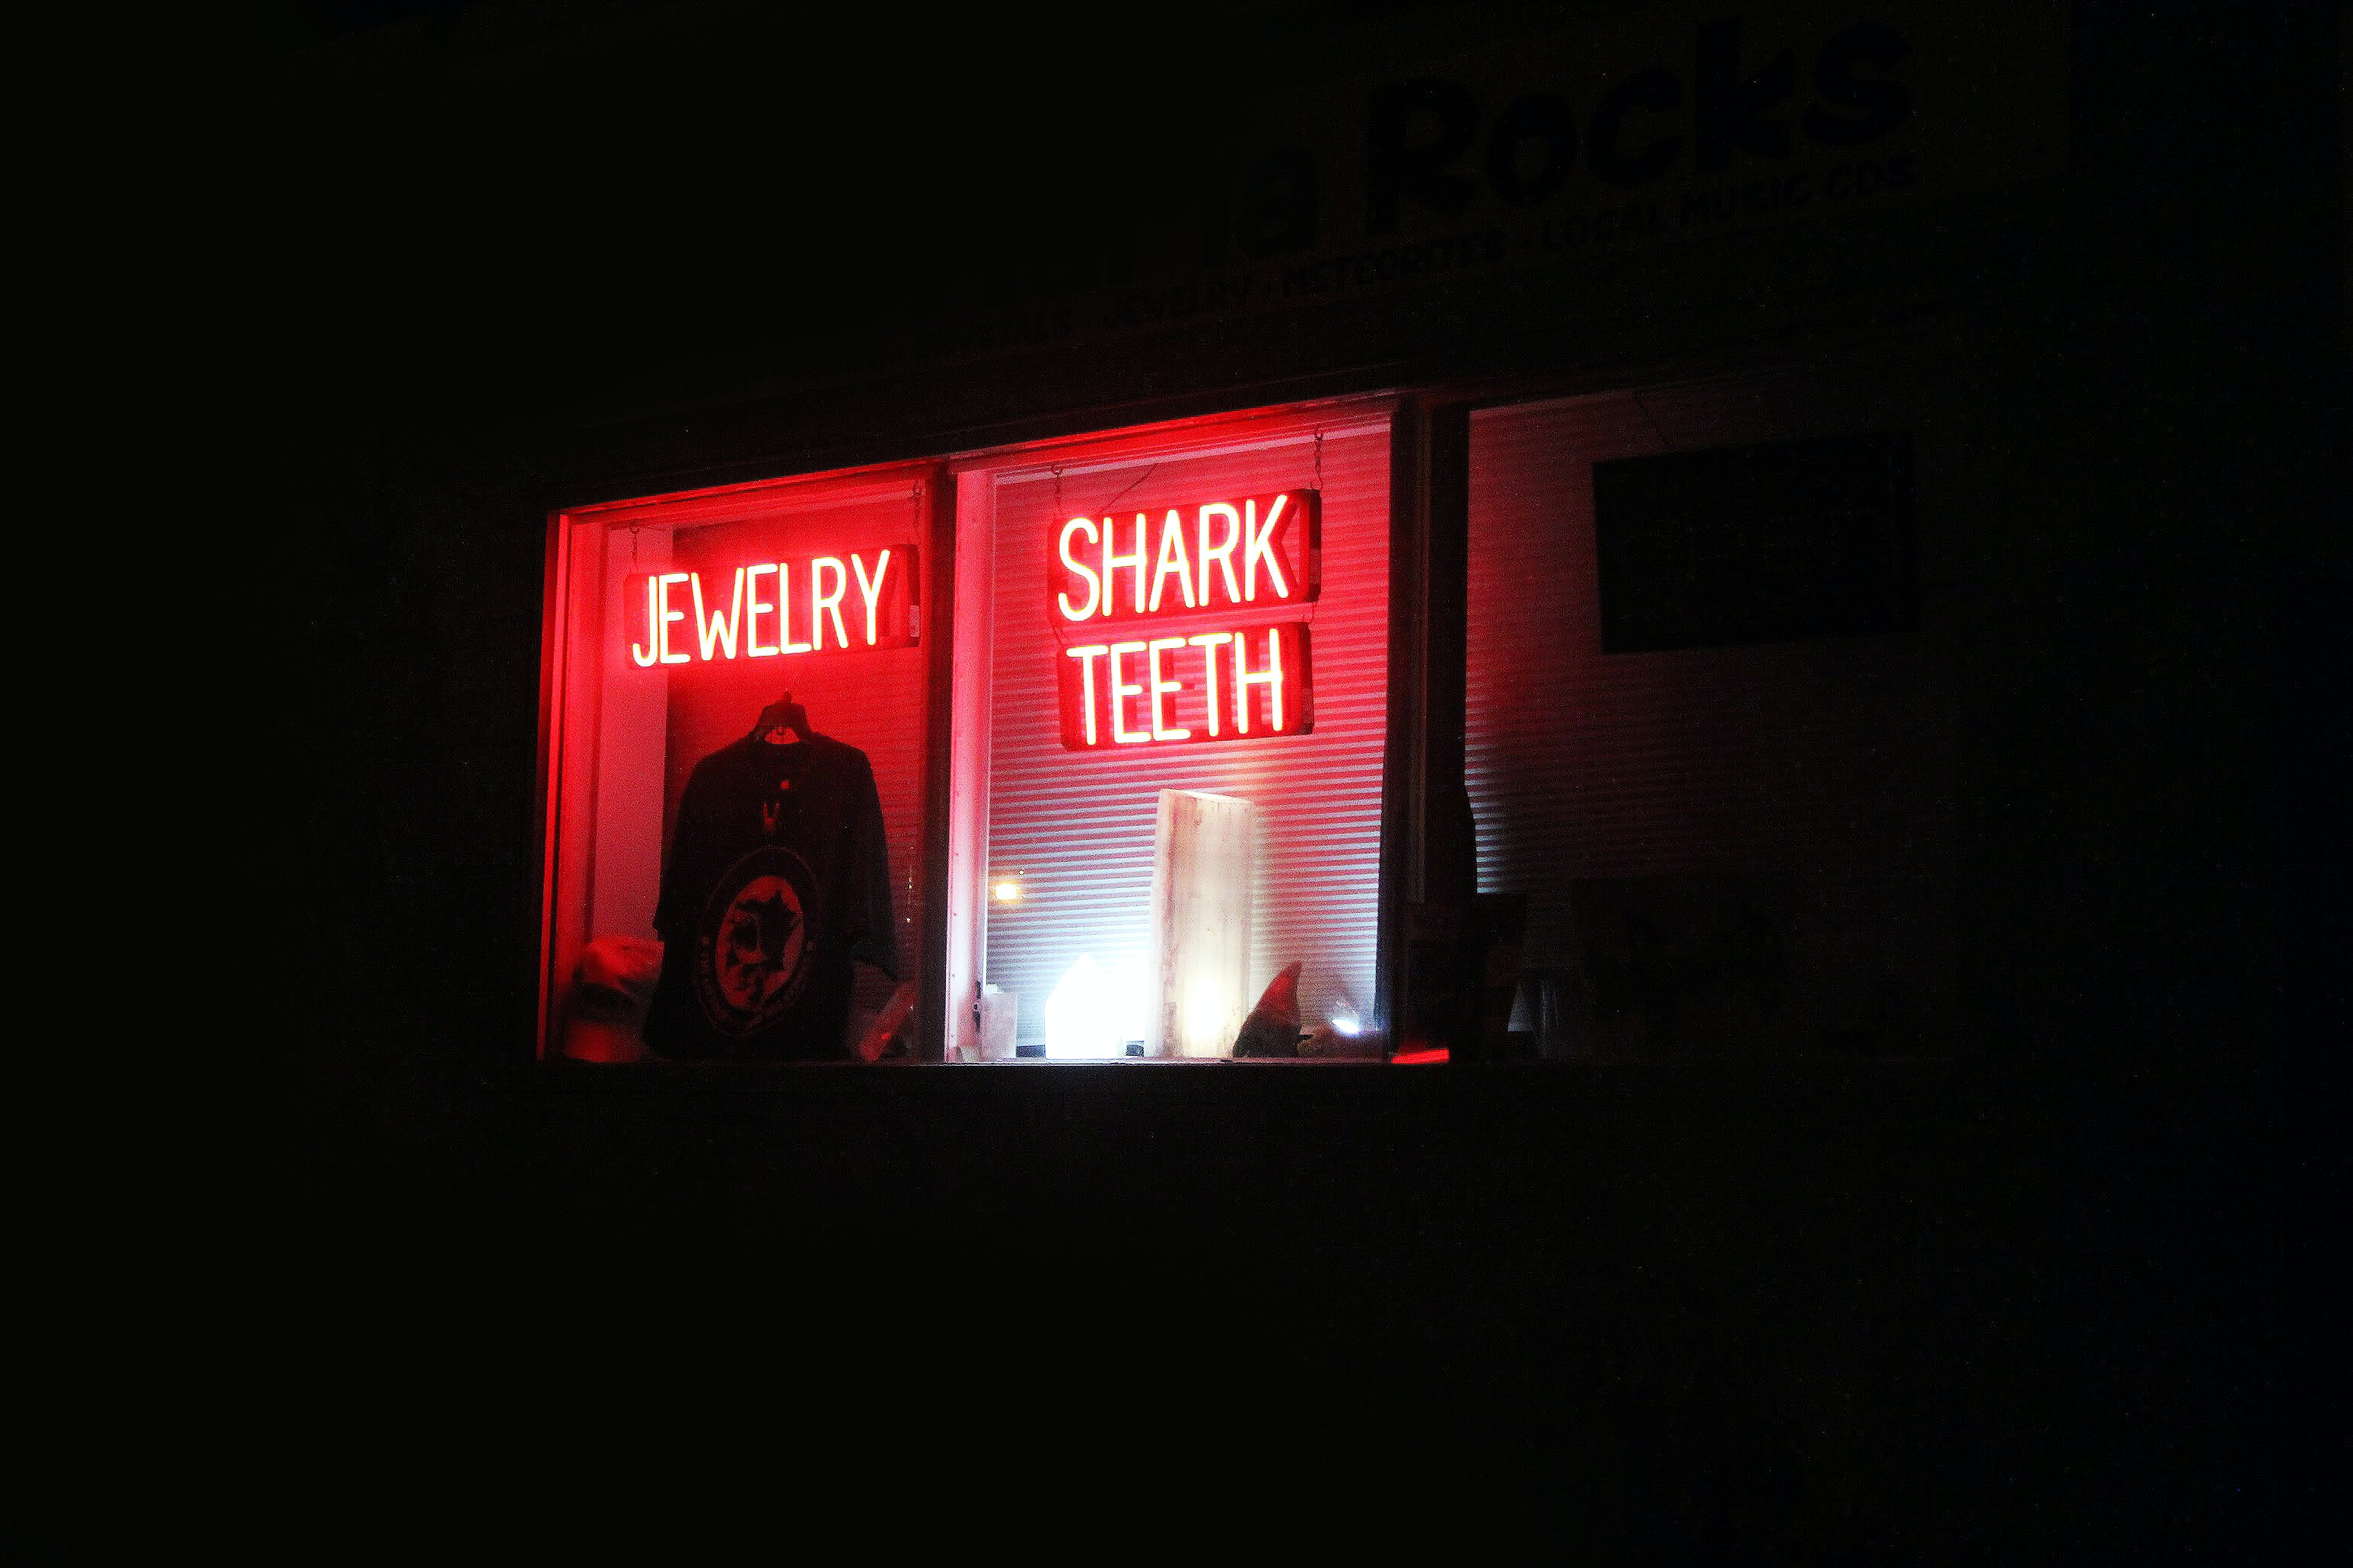 Shark Teeth neon signage on glass window